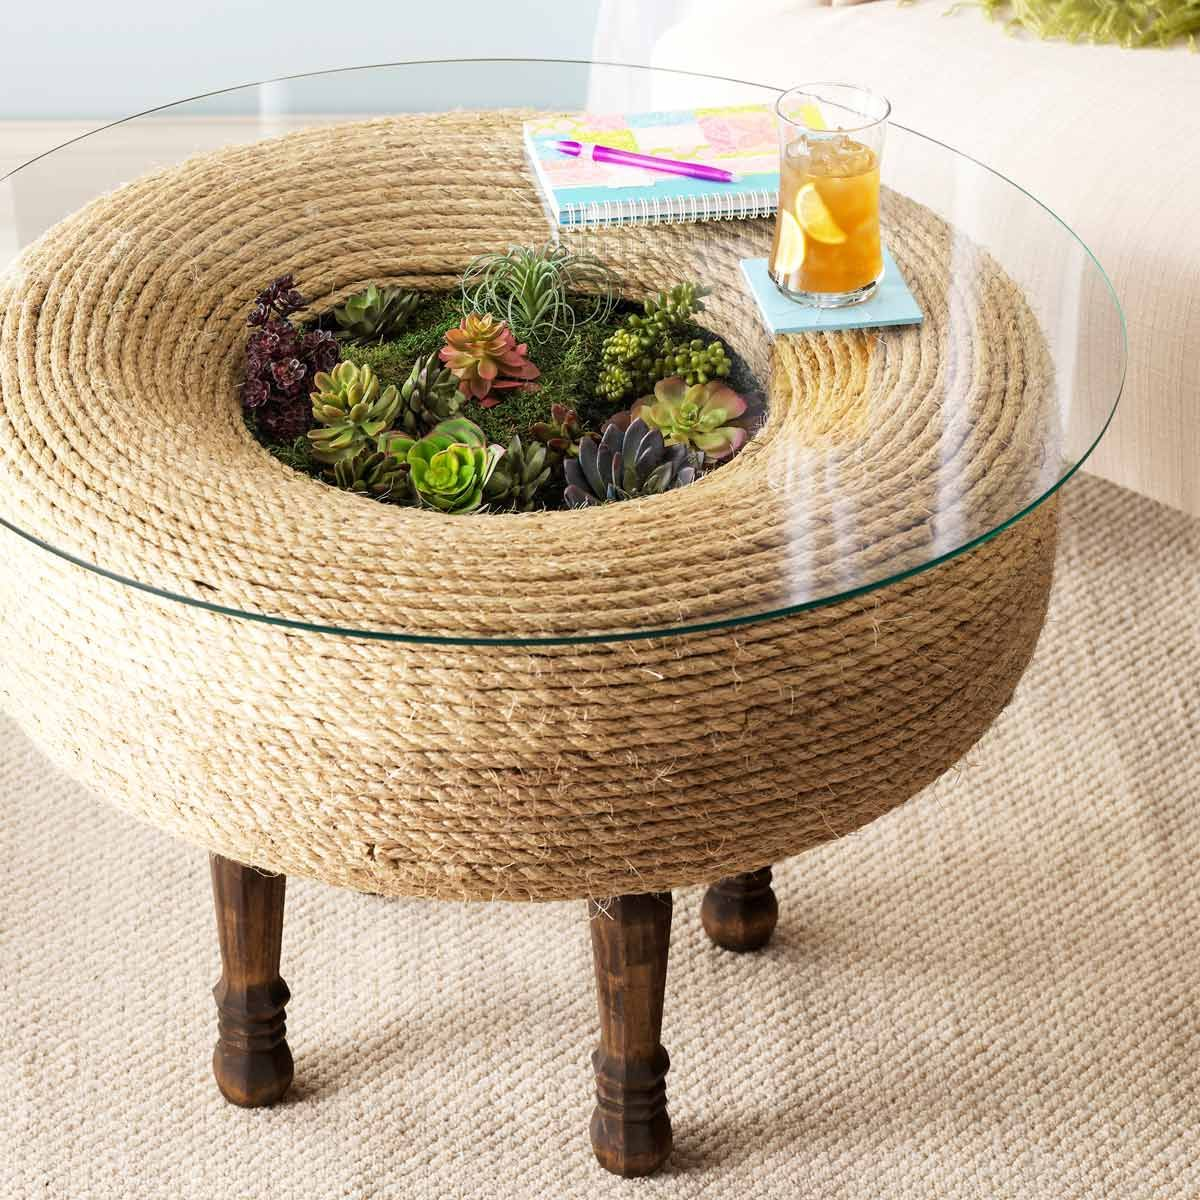 Terrarium Twist How To Turn An Old Tire Into A Planter Table Diy Furniture Table Diy Furniture Decor Homemade Home Decor [ 1200 x 1200 Pixel ]